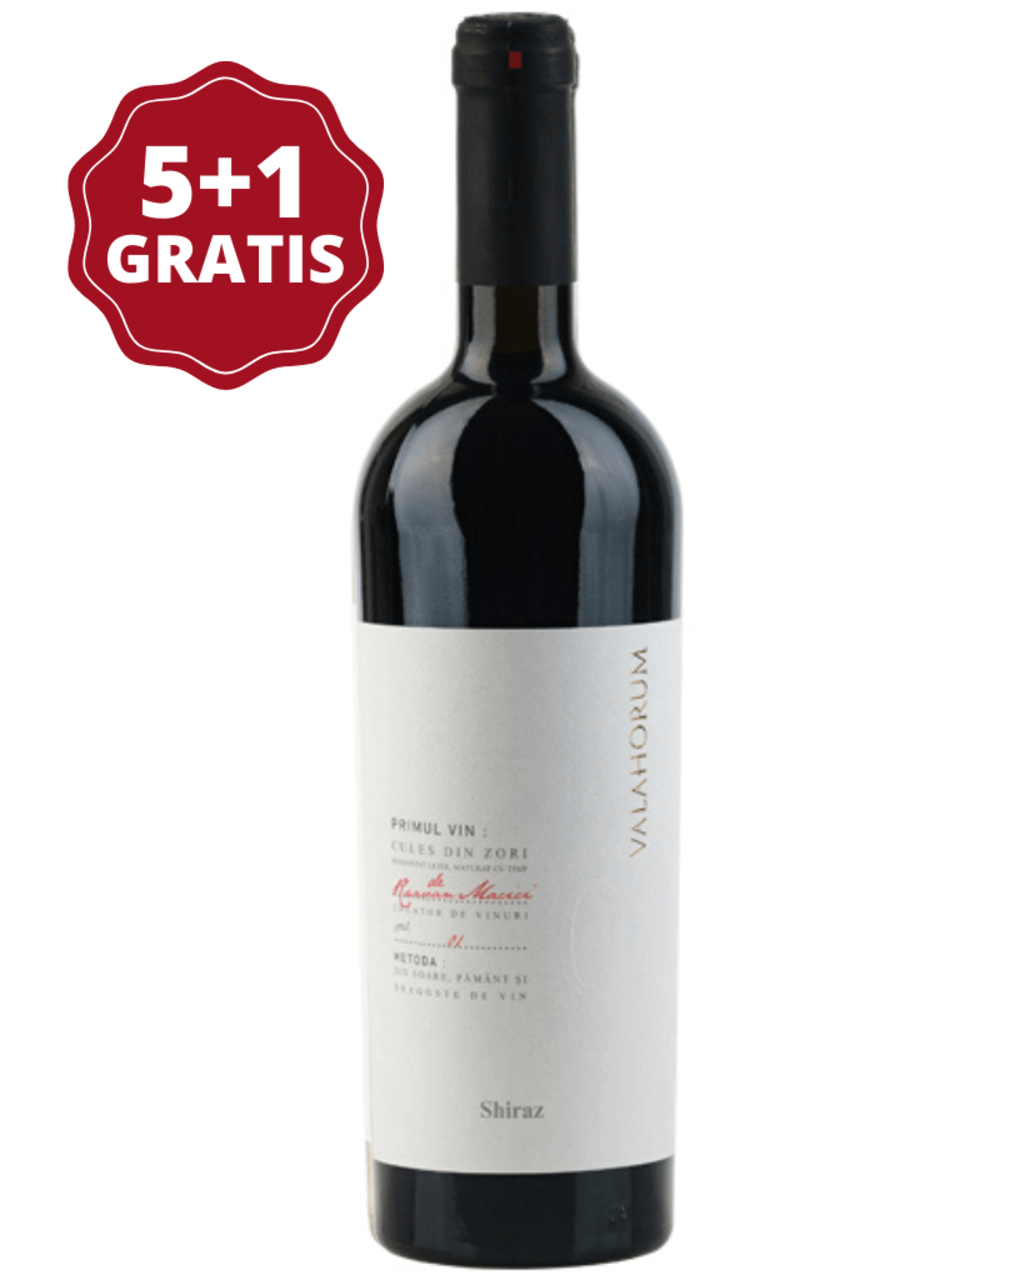 Valahorum Shiraz 5+1